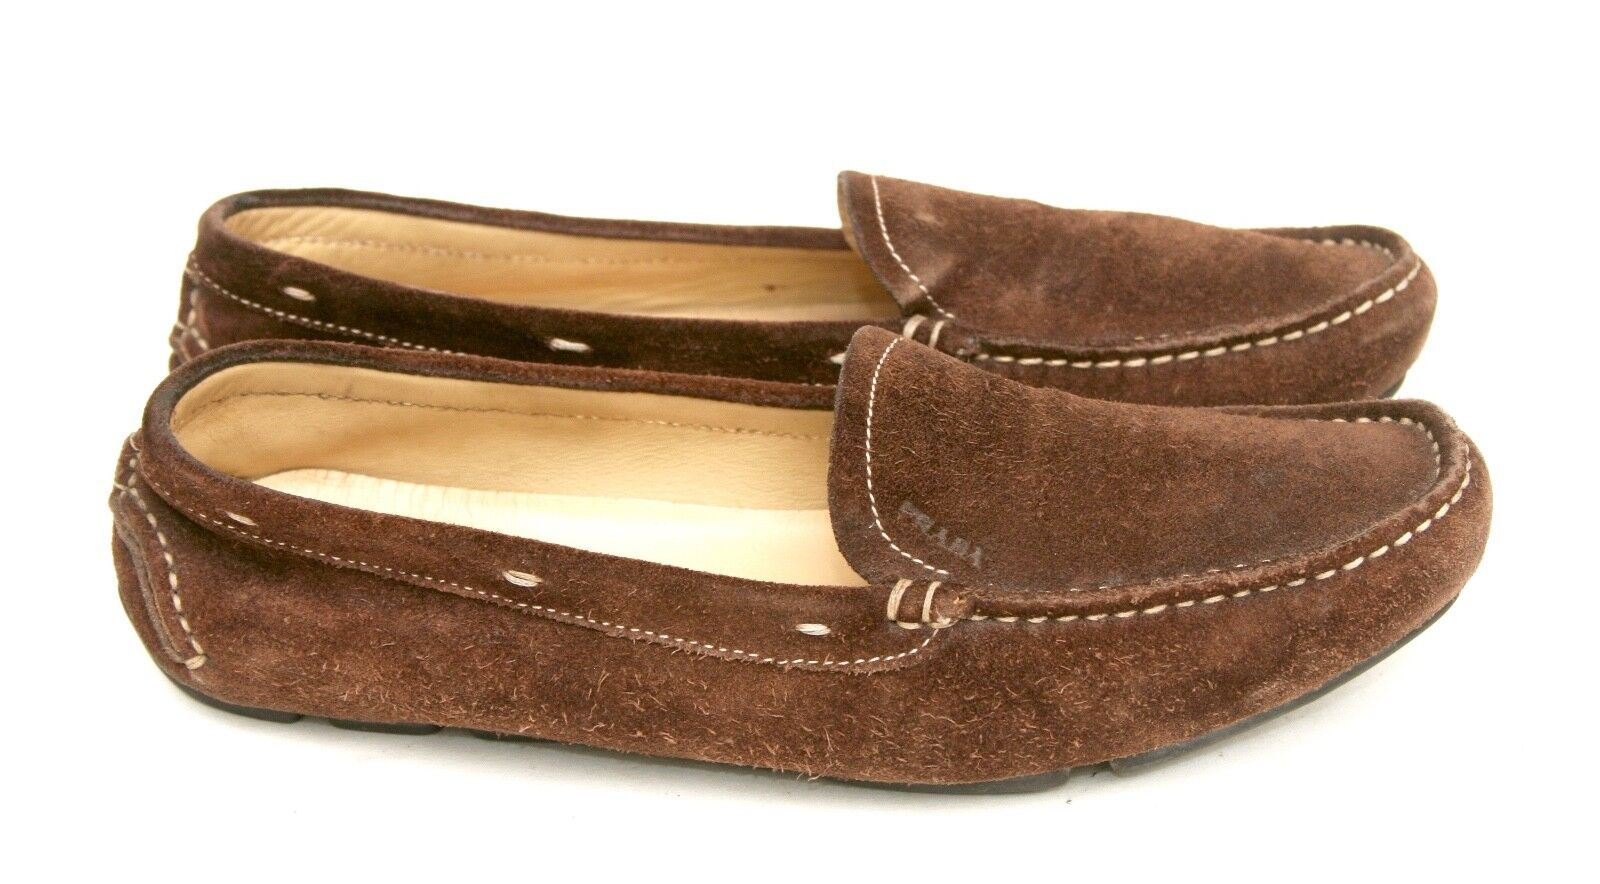 Prada Italy Brown Suede Leather Loafer Slip On Oxford Driving Shoe SZ 35.5  US 5